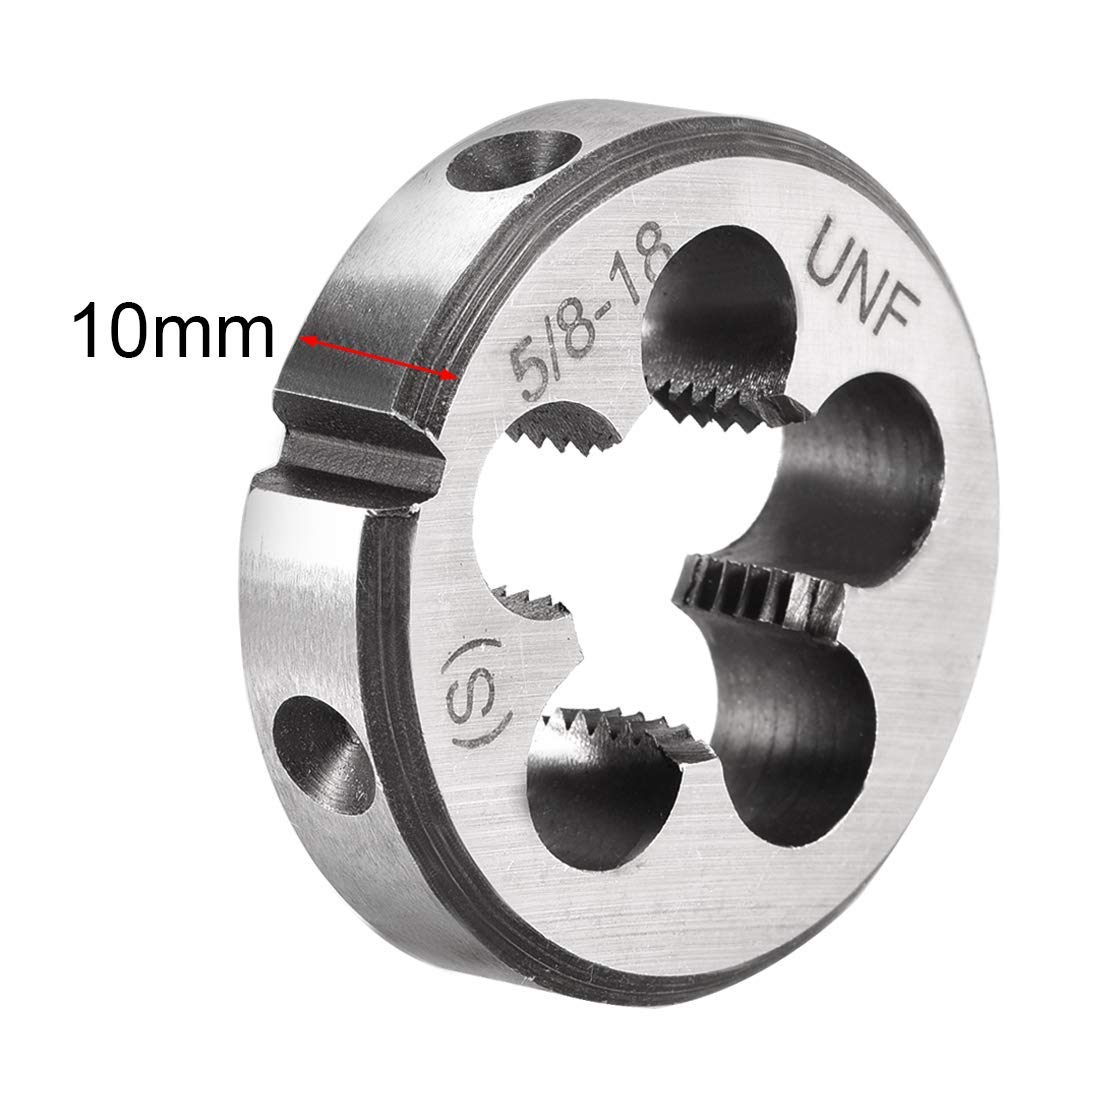 5//8-18 UNF Tap /& 5//8-18 UNF Die Right Hand HSS High Quality New 5//8-18